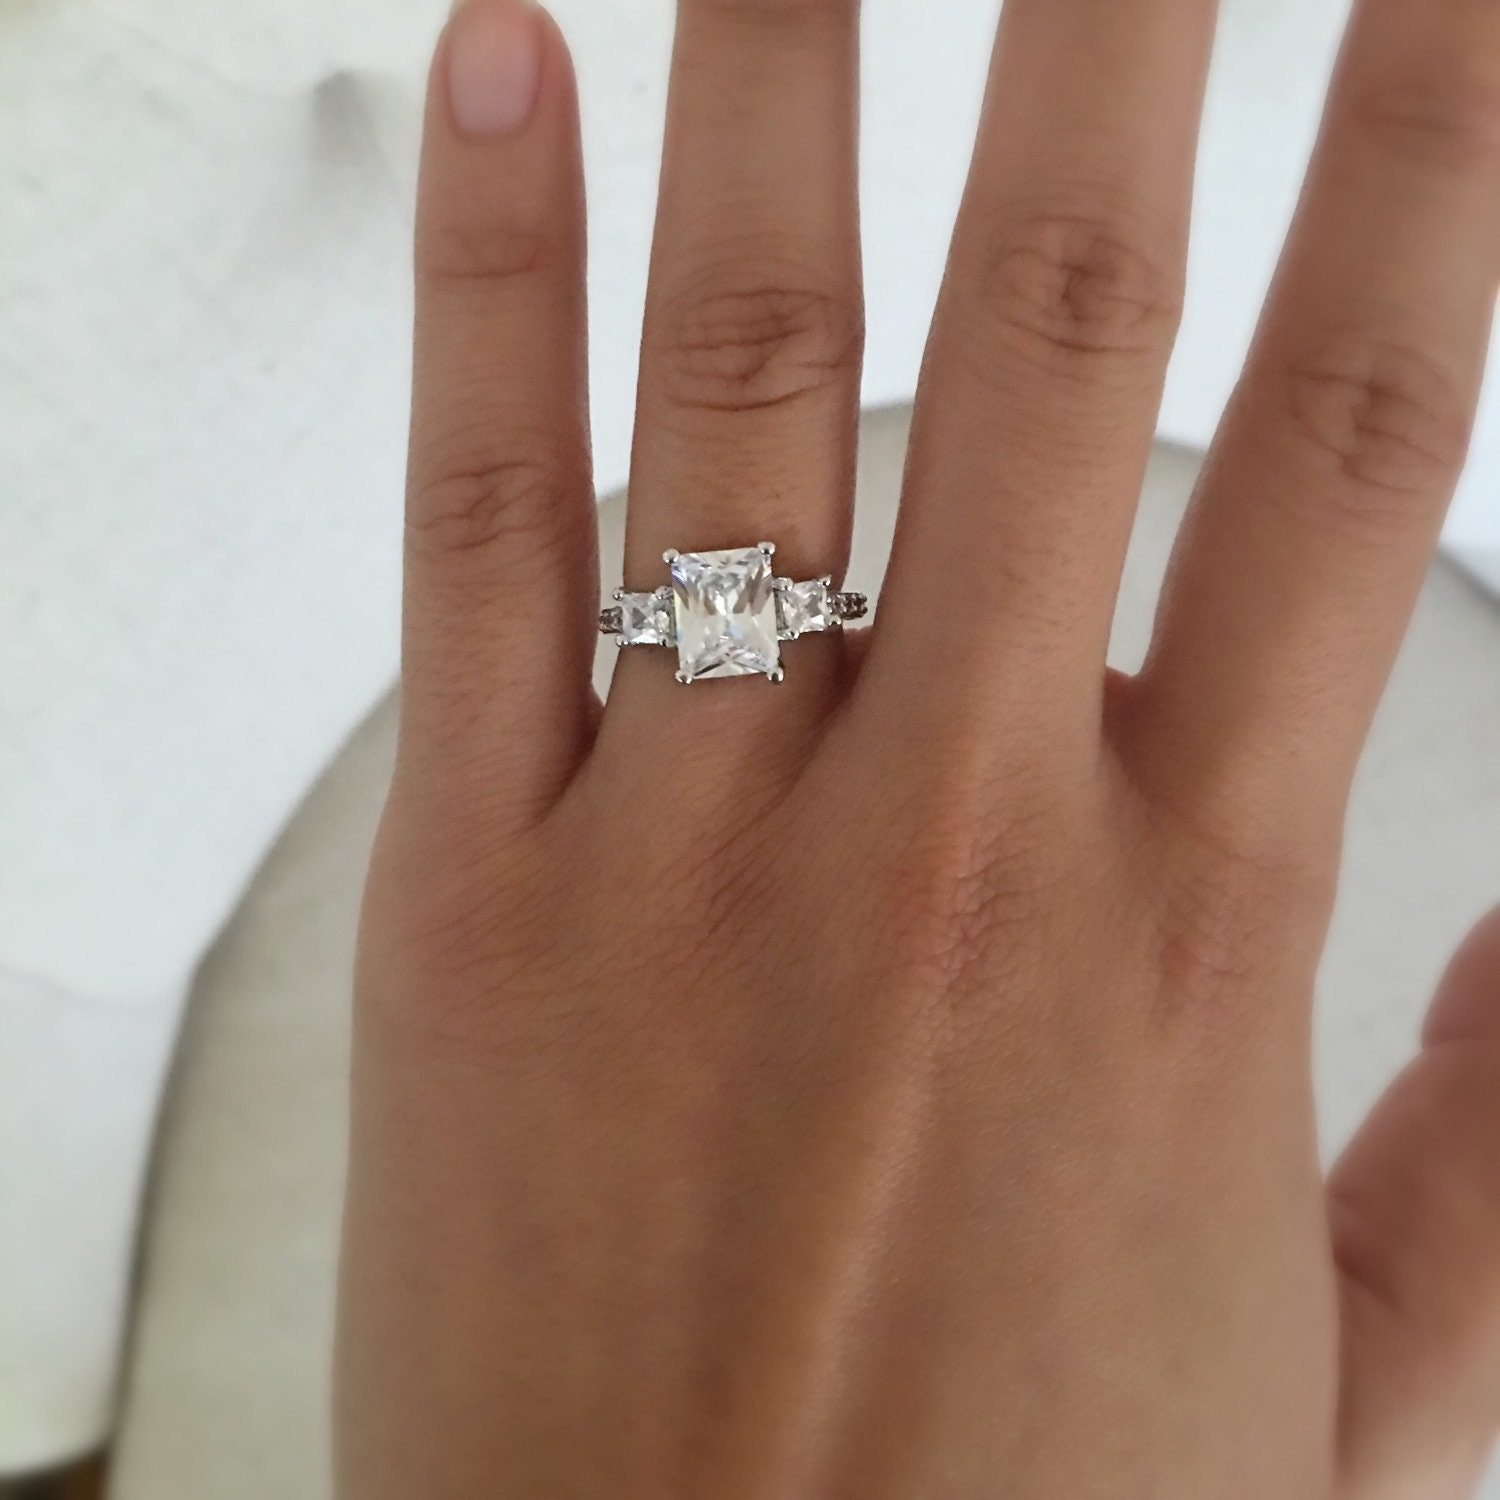 Emerald cut rectangle engagement ring wedding ring promise